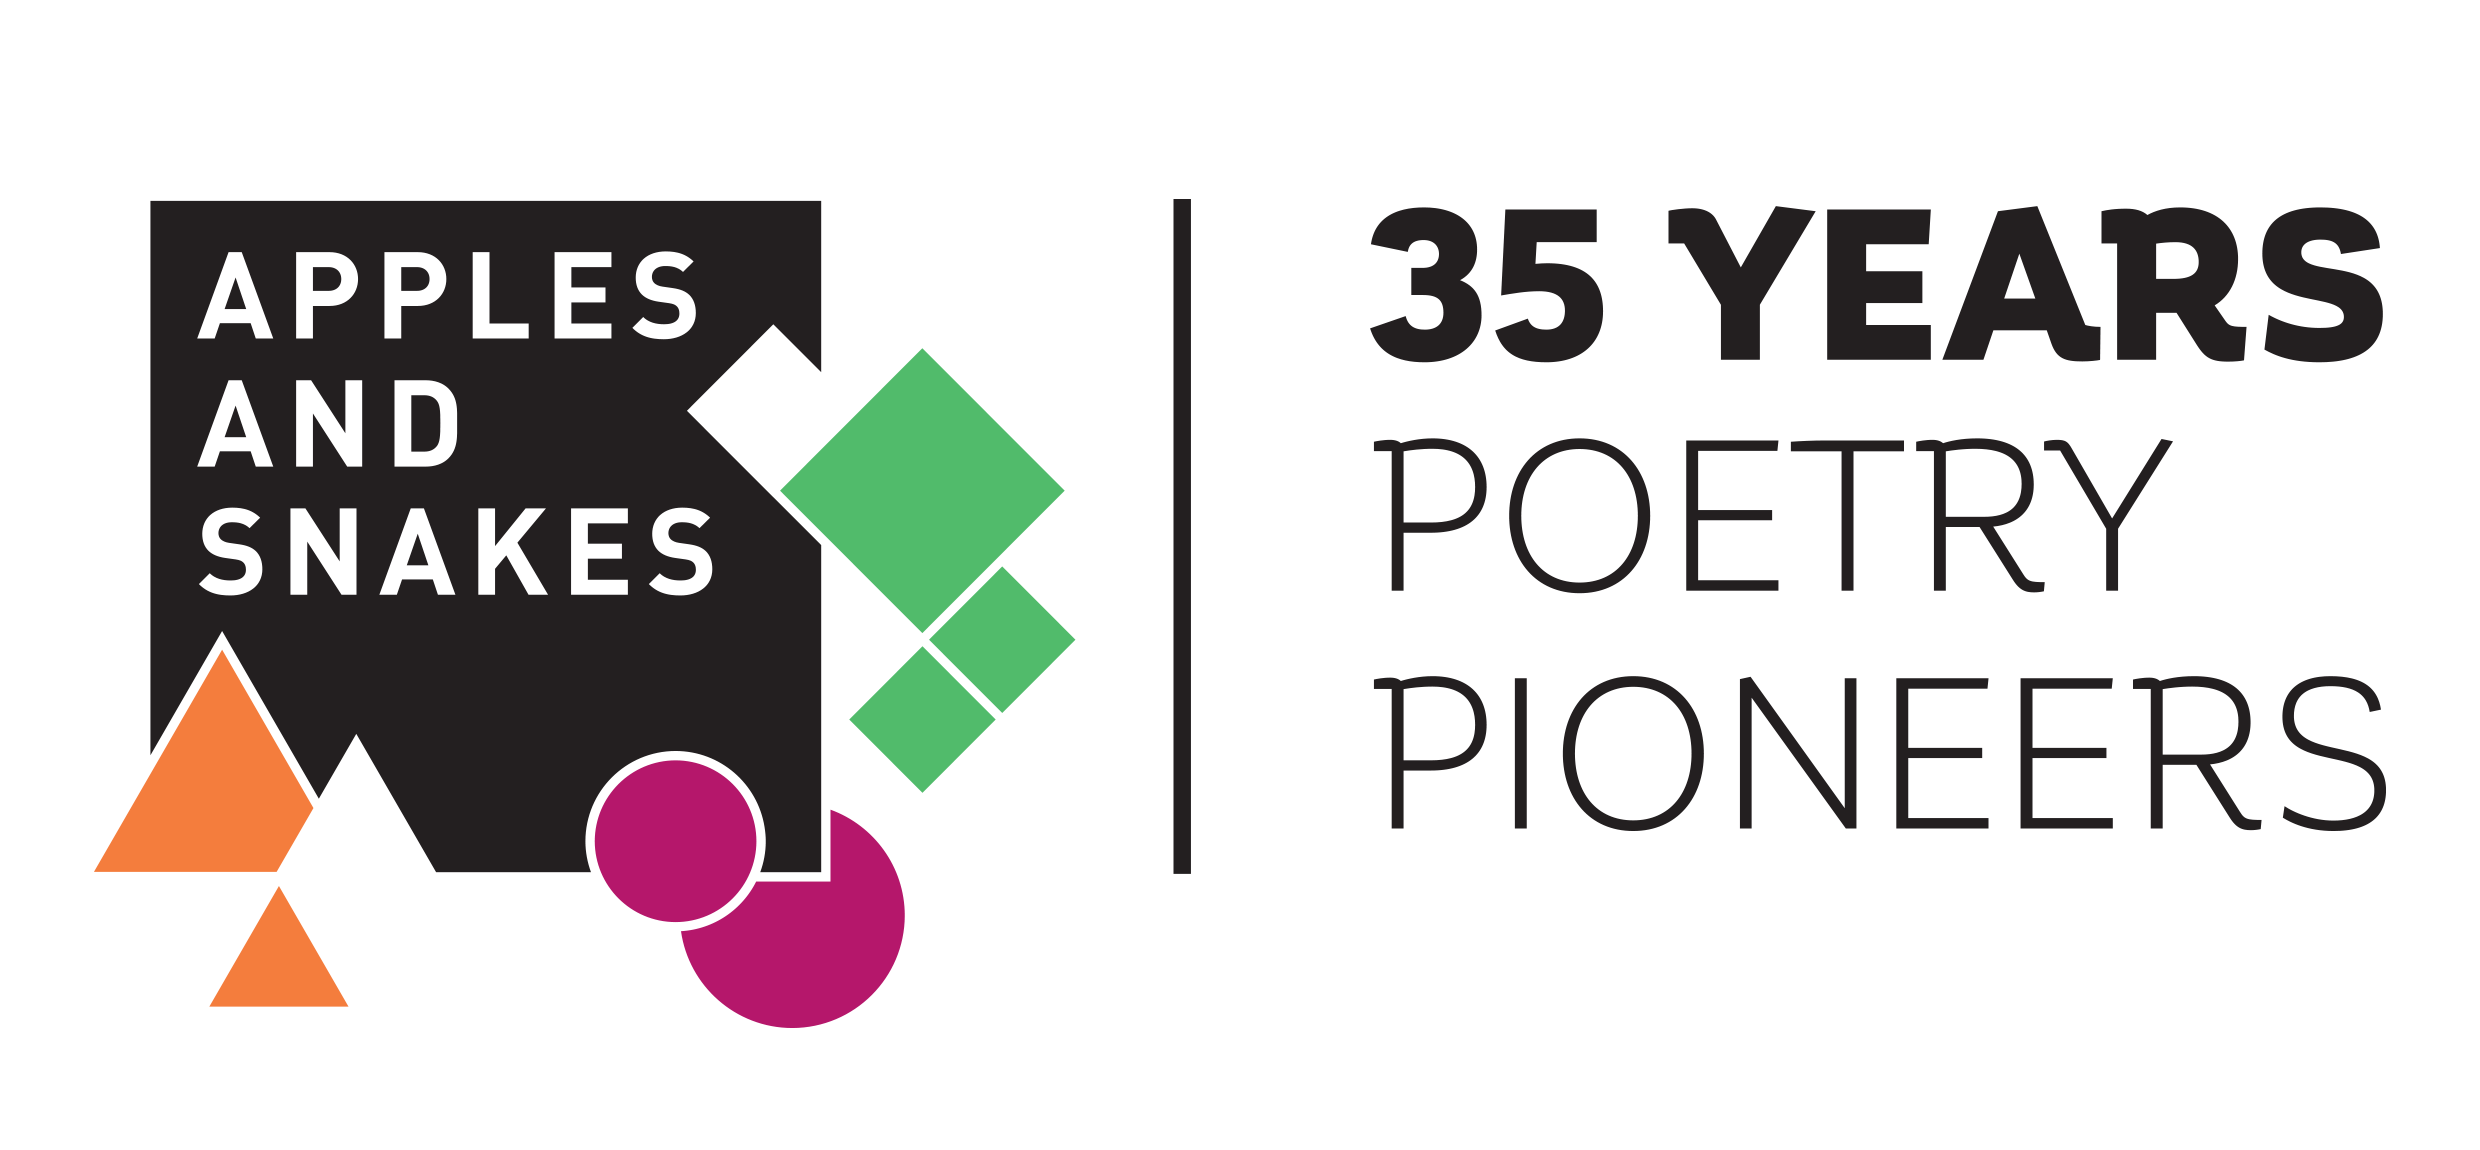 Apples to apples logo png. We believe that poetry